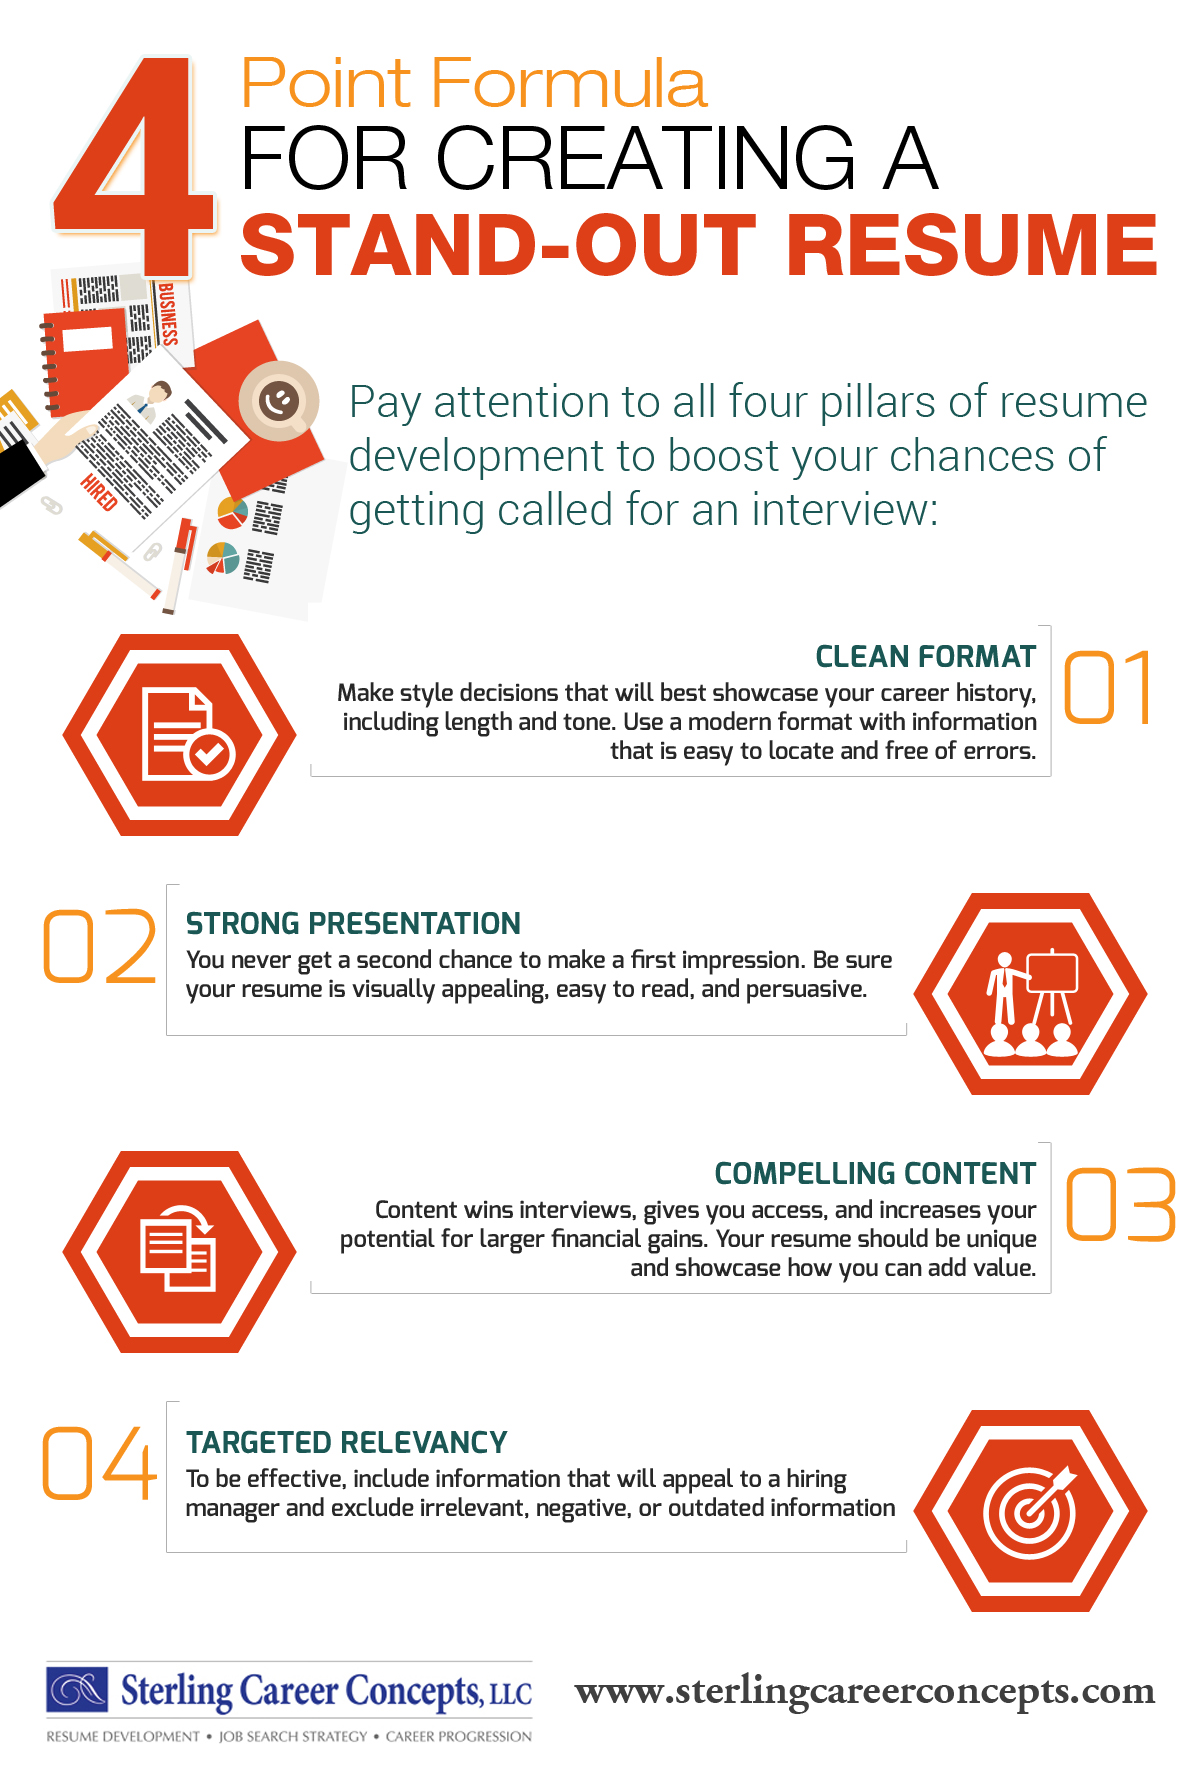 Infographic 4 Point Formula For Creating A Standout Resume